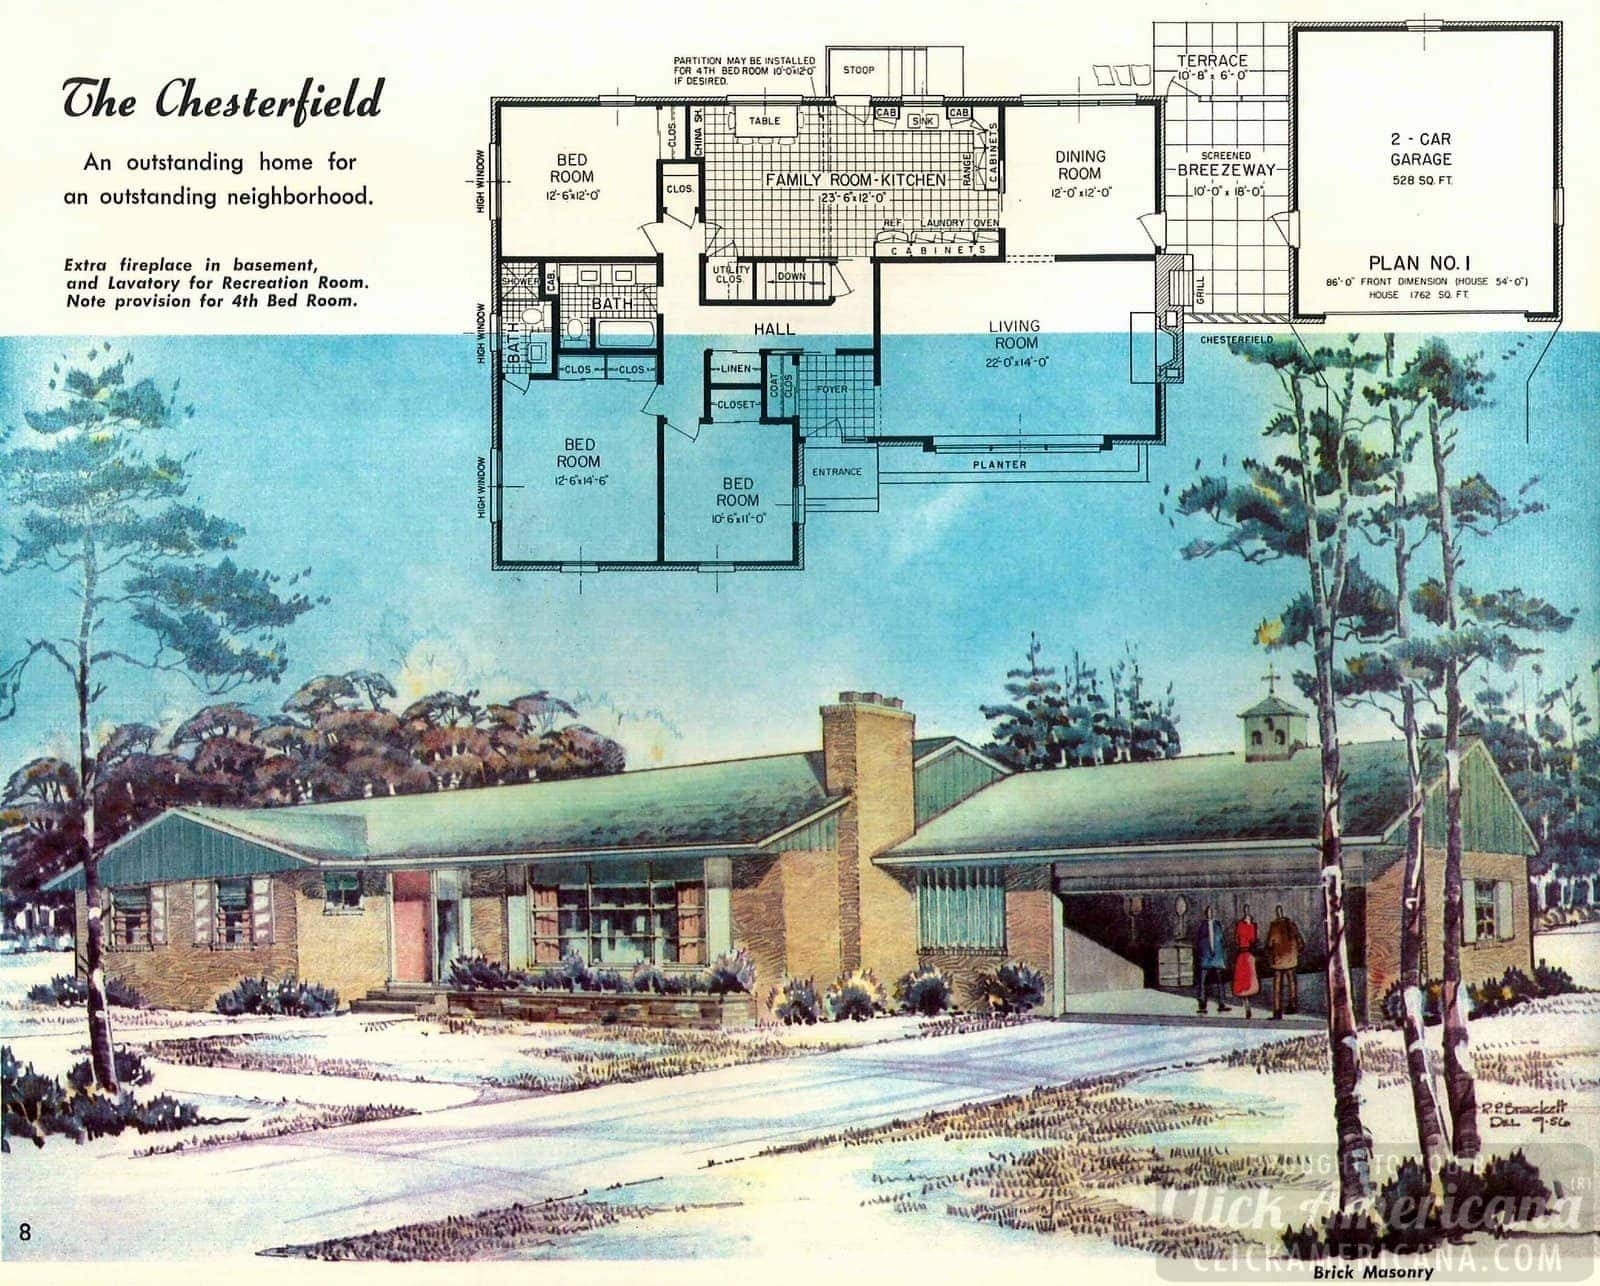 The Chesterfield: House design plans from the '50s